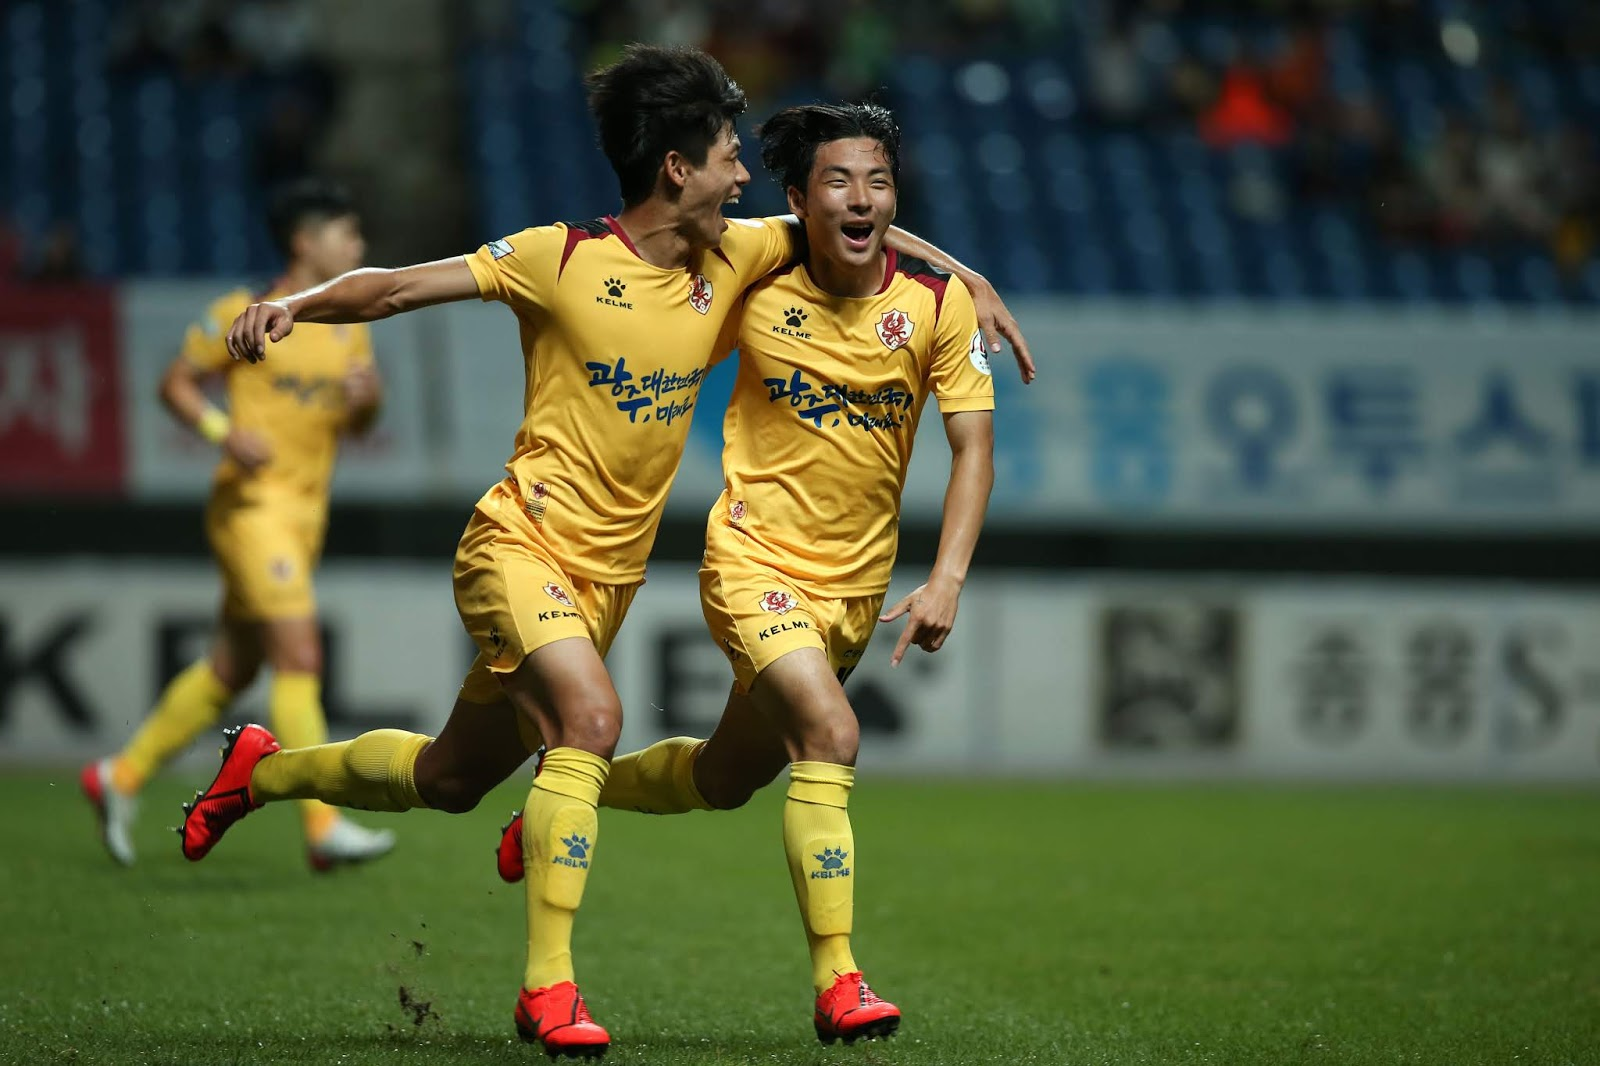 Gwangju vs Ansan 10.01.19, Lim Min-hyuk scores the winner from a free kick in the first half.